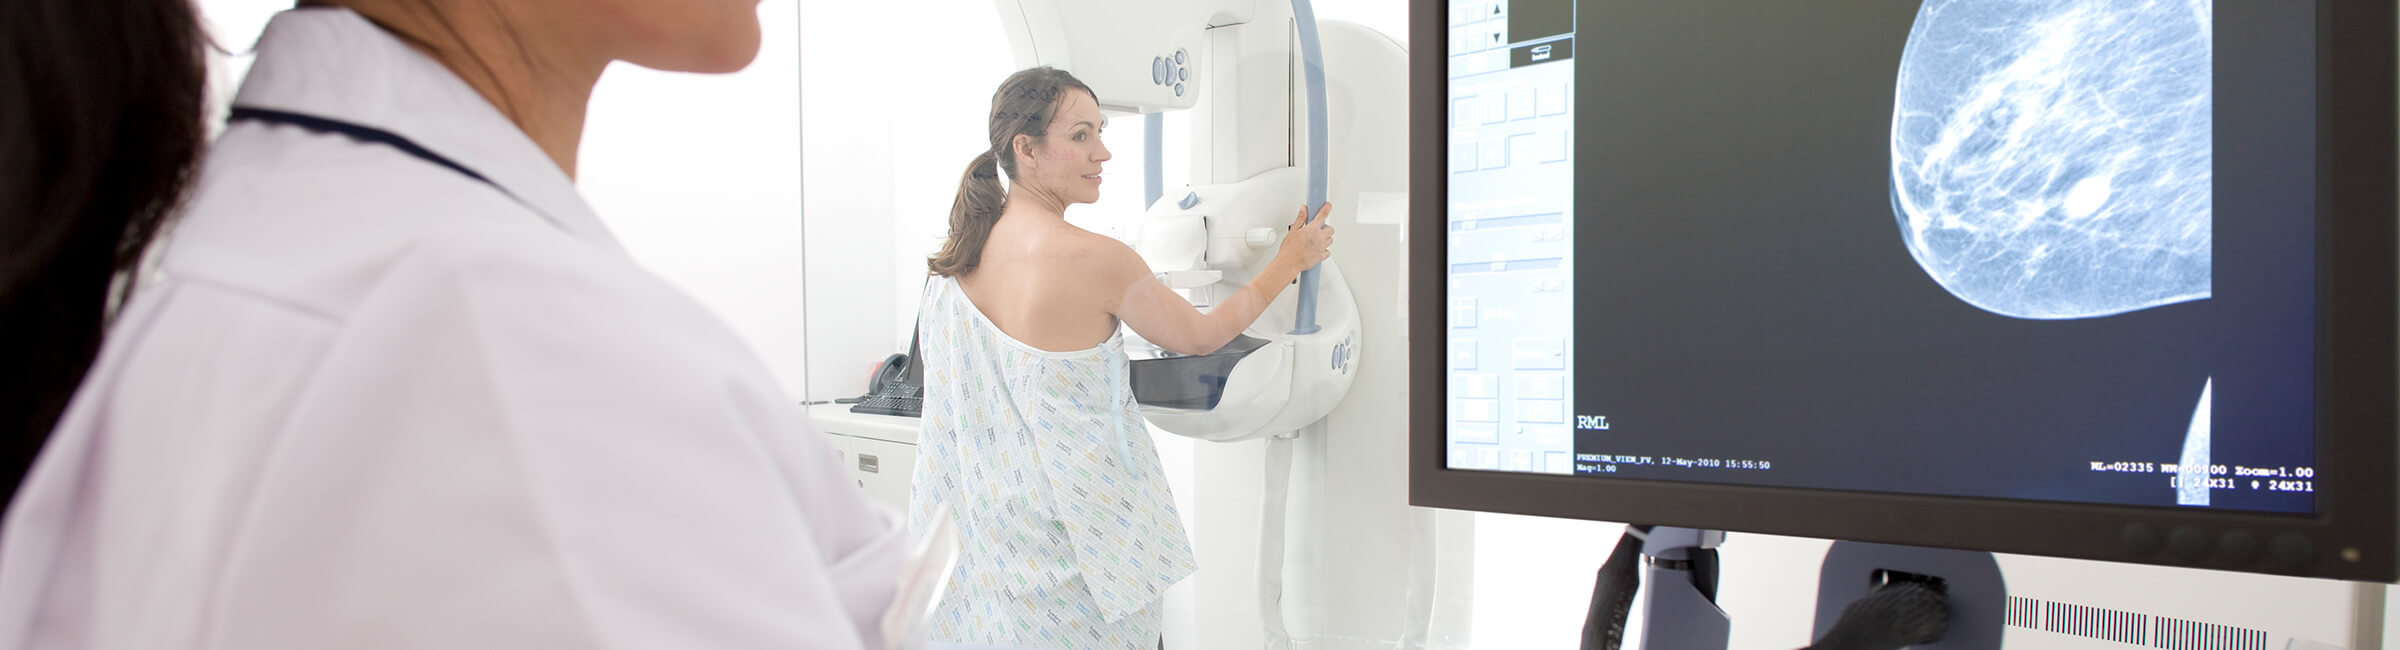 Mammography Products